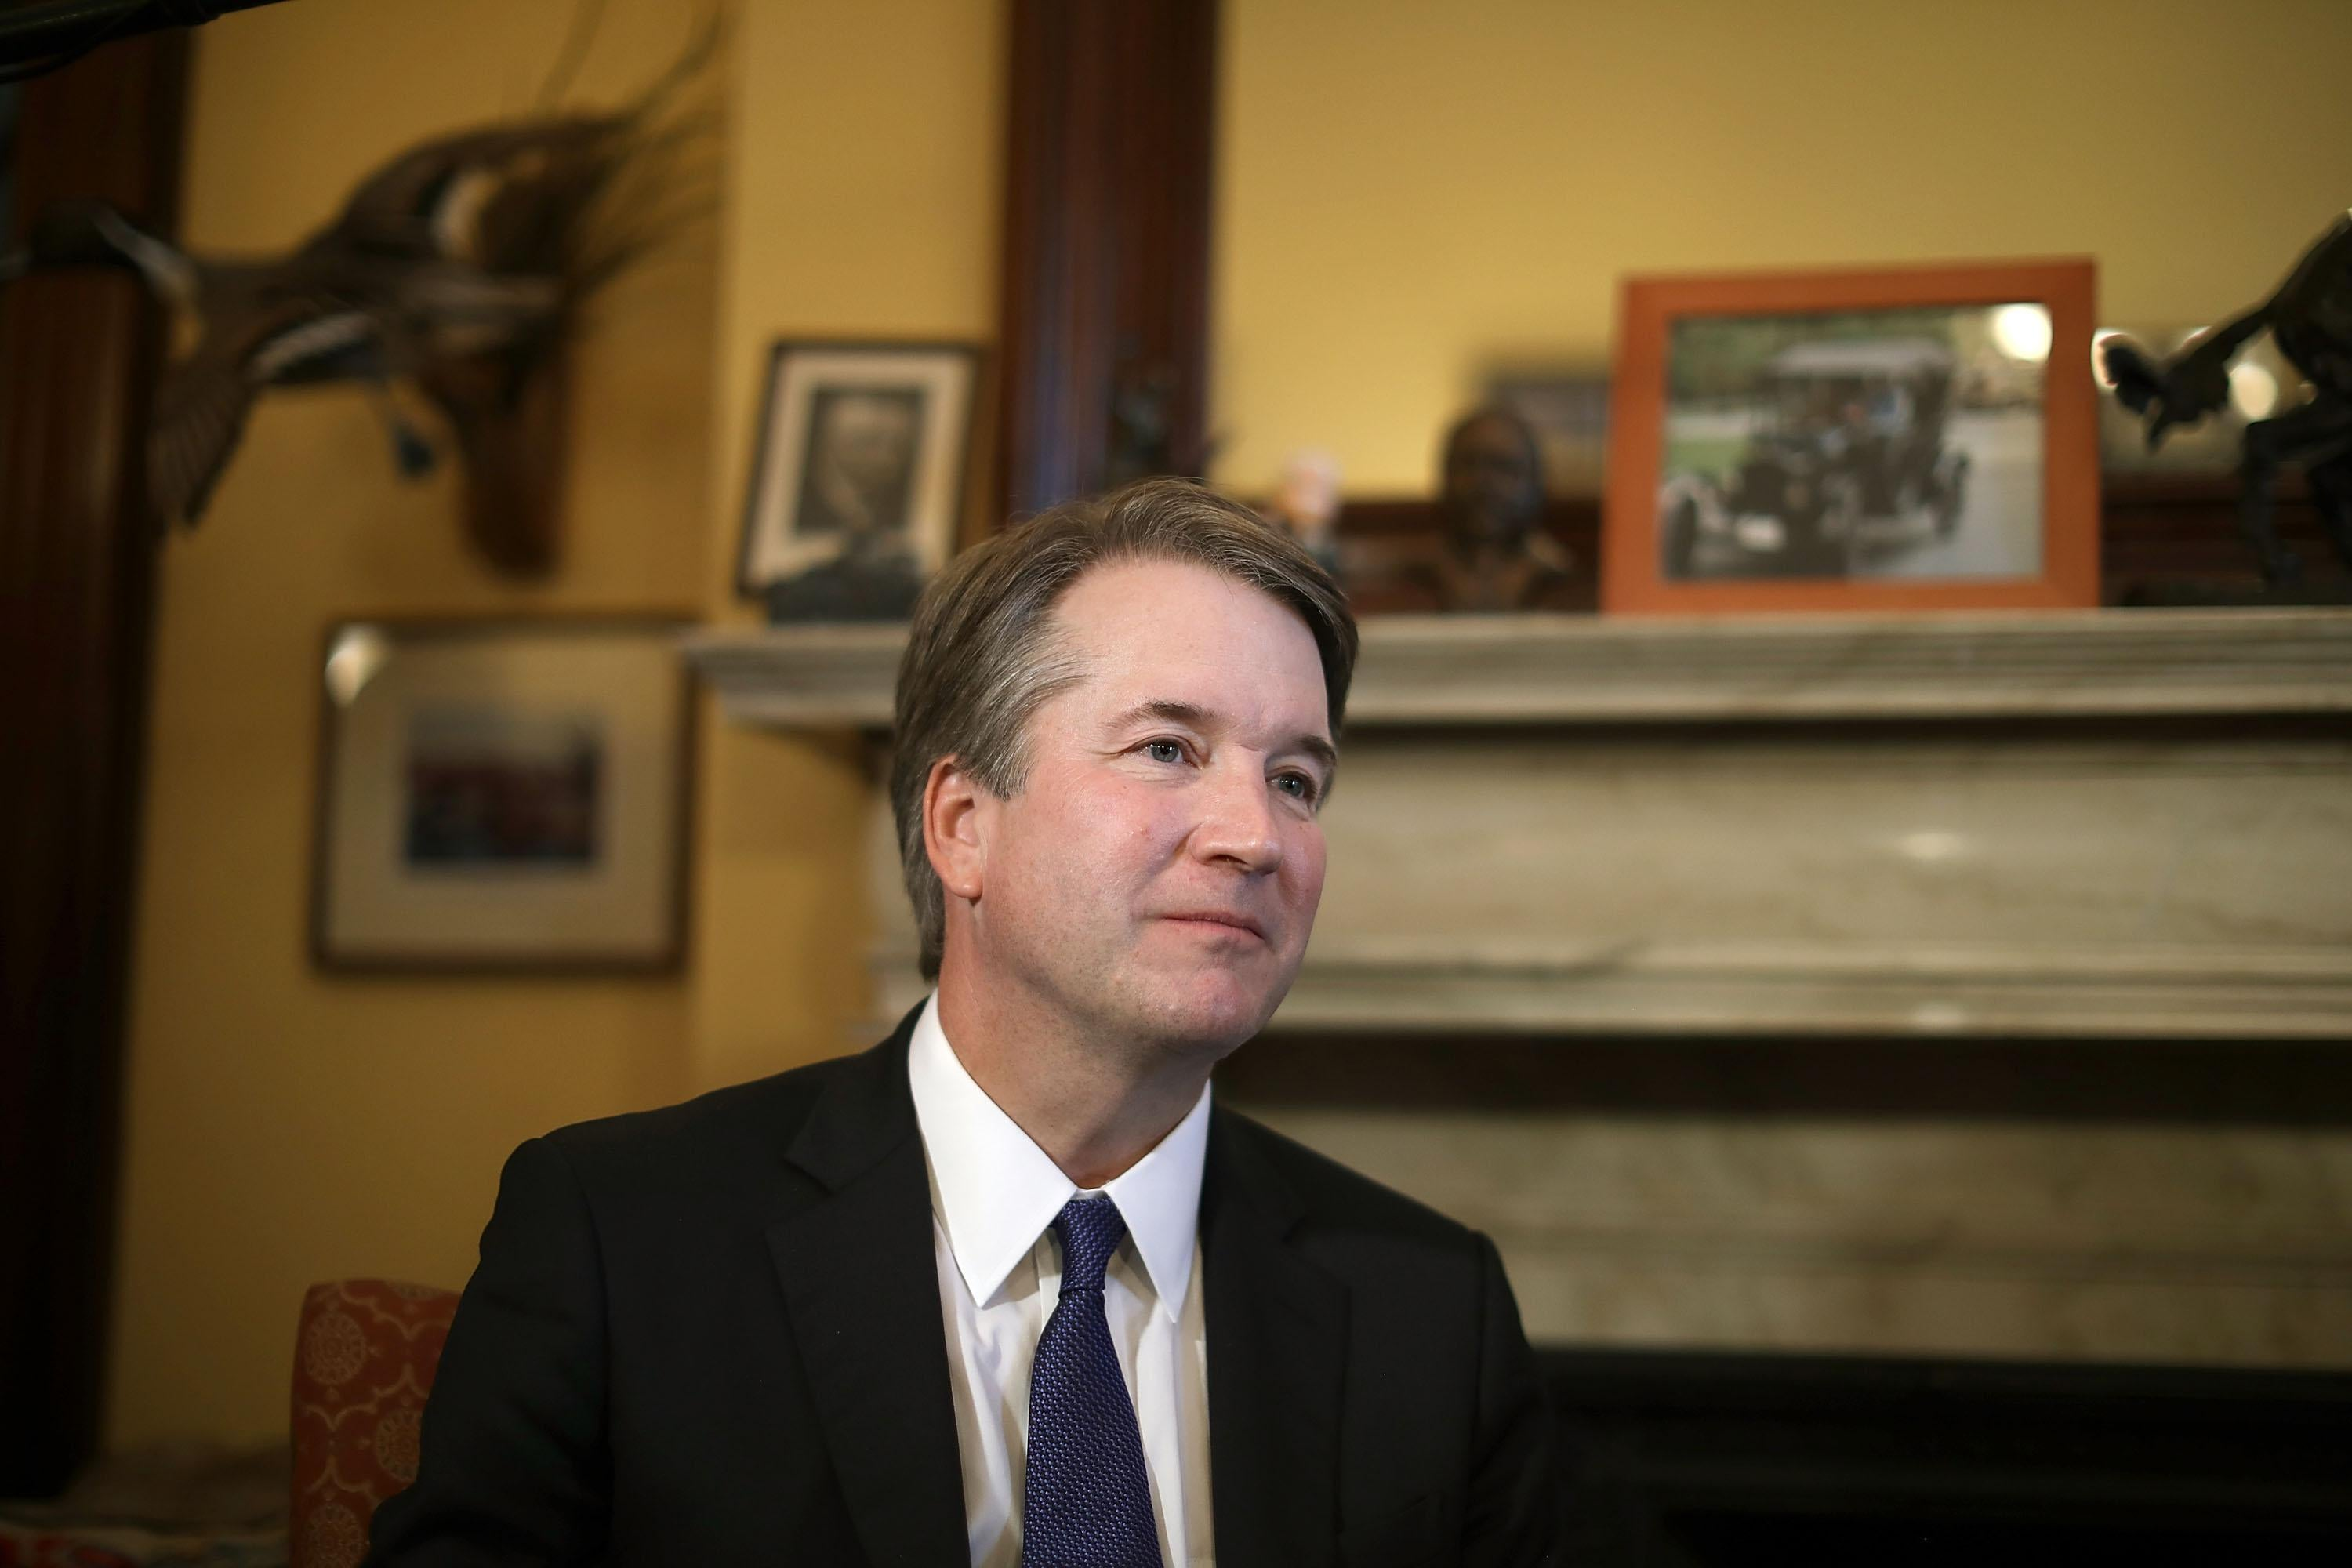 Judge Brett Kavanaugh listens to Sen. Rob Portman talk about Kavanaugh's qualifications.